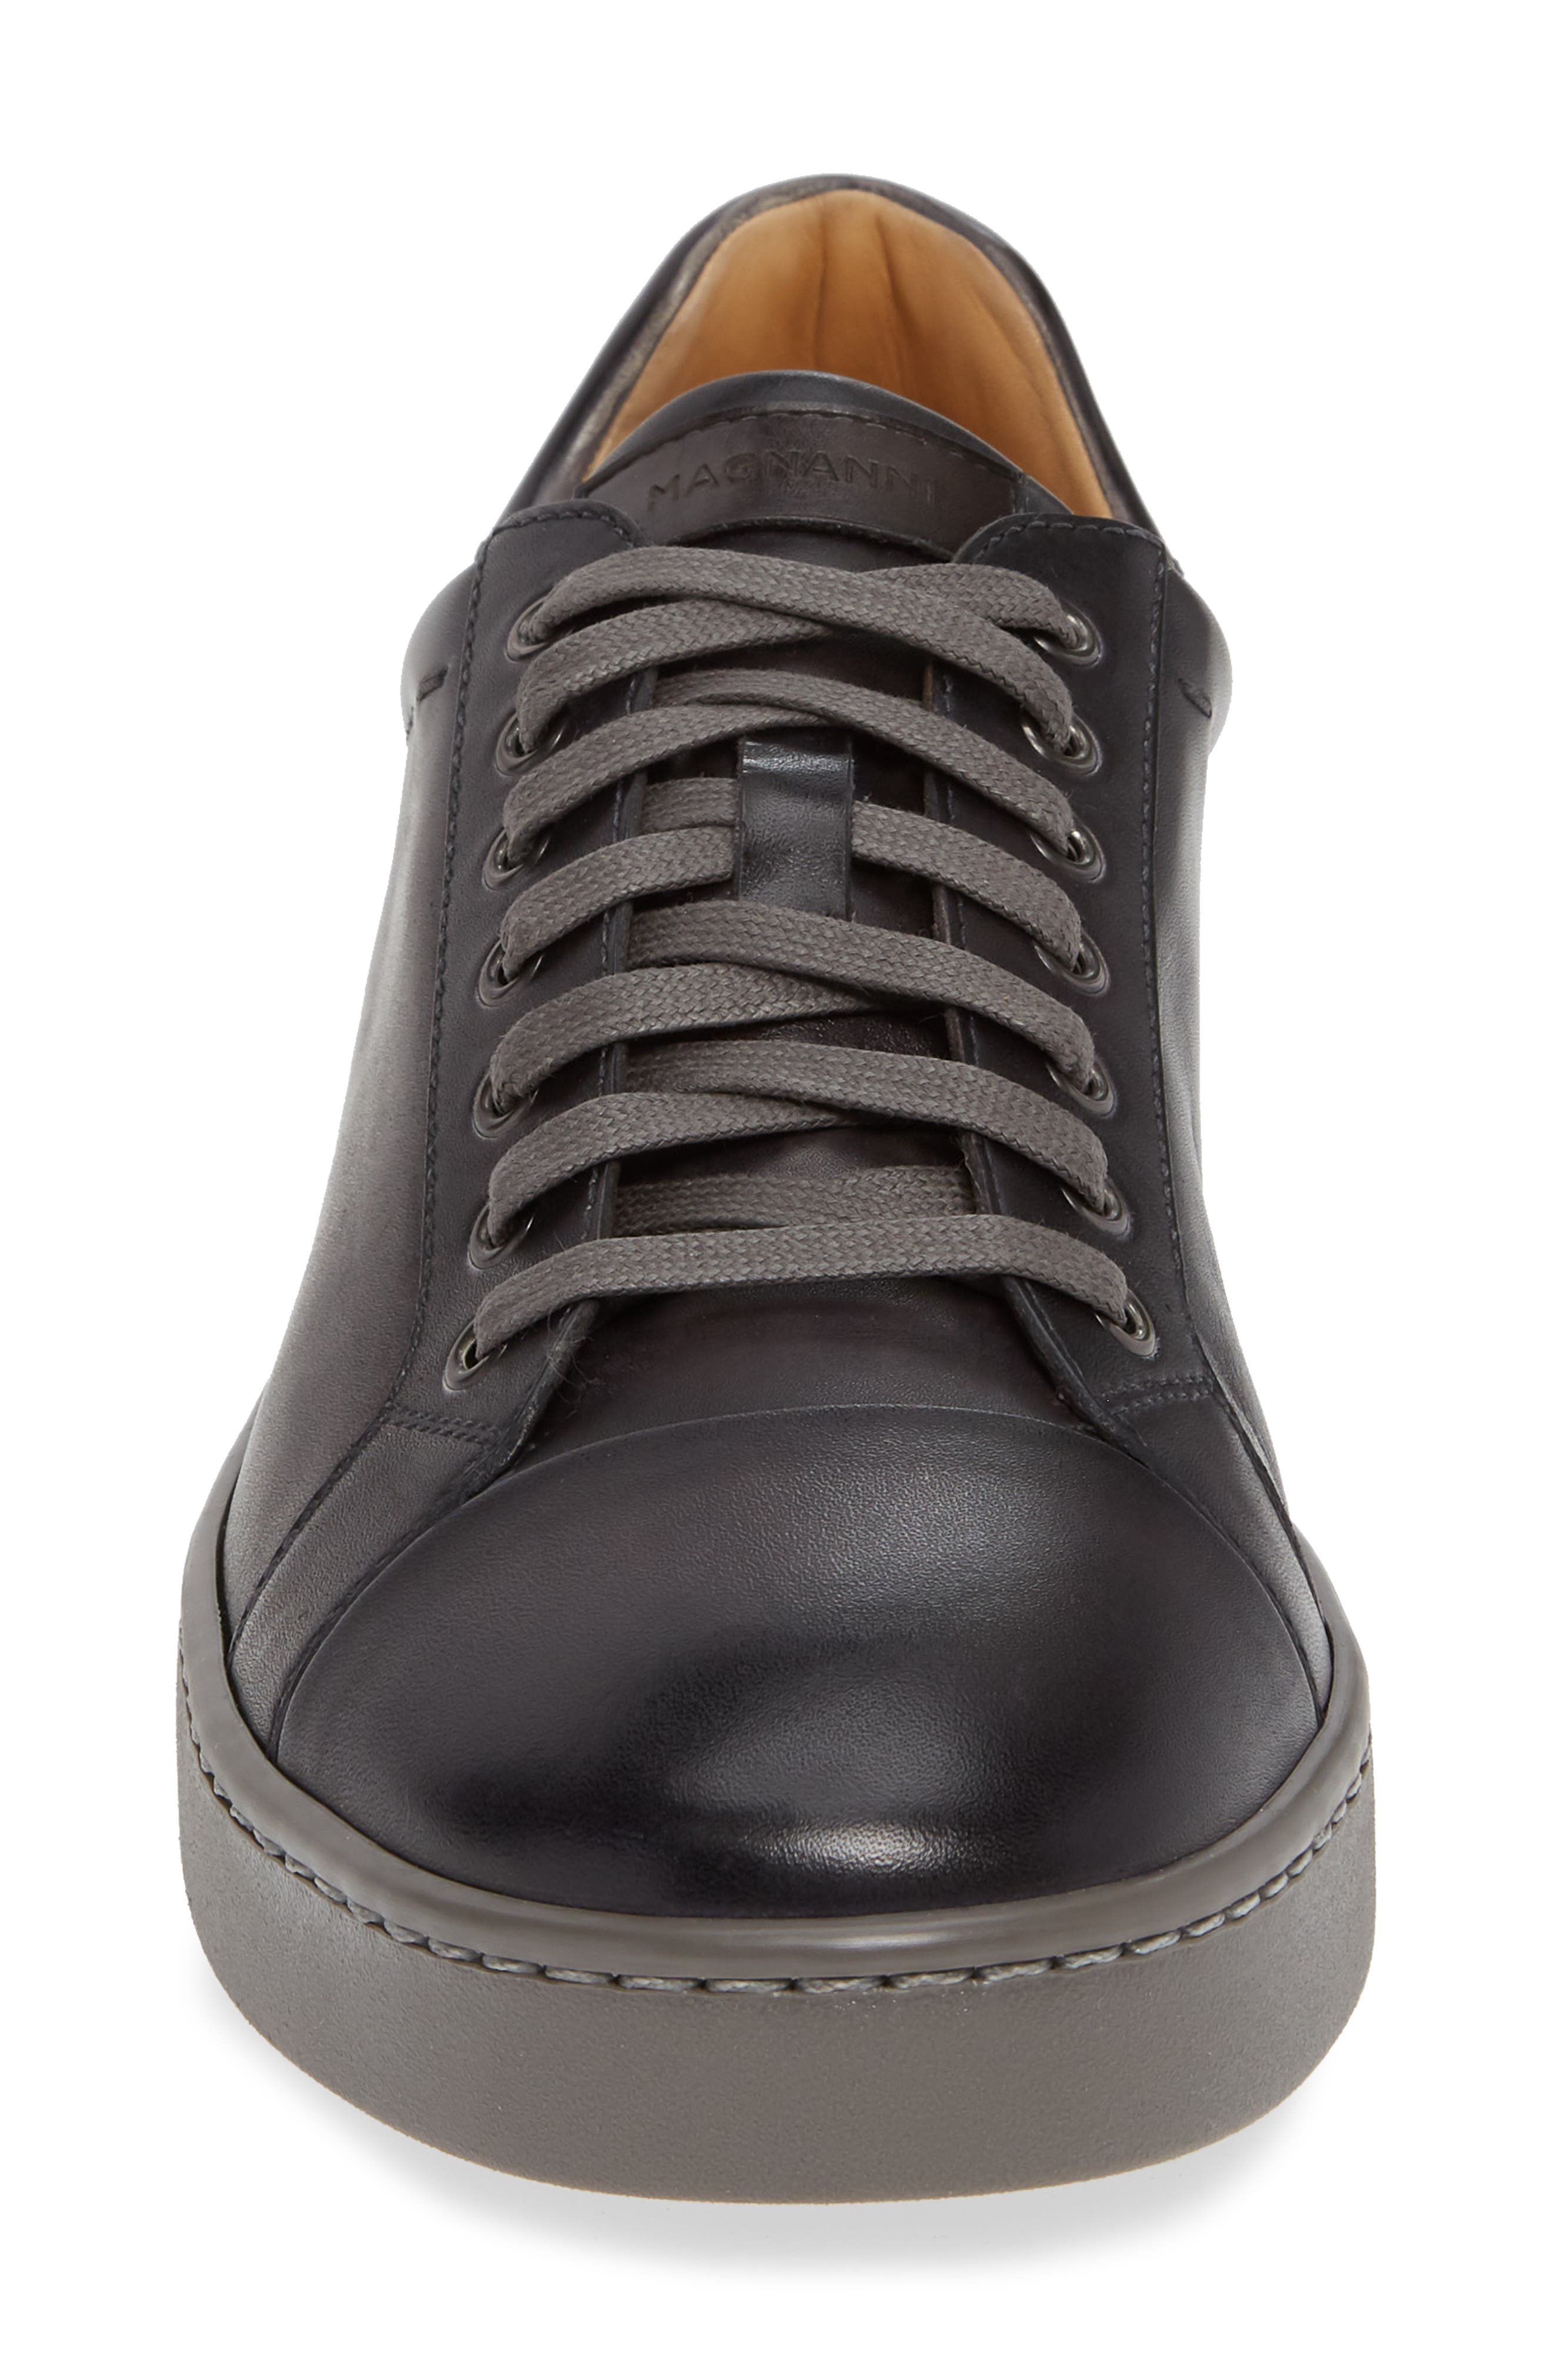 Caitin Sneaker,                             Alternate thumbnail 4, color,                             GREY/ GREY LEATHER